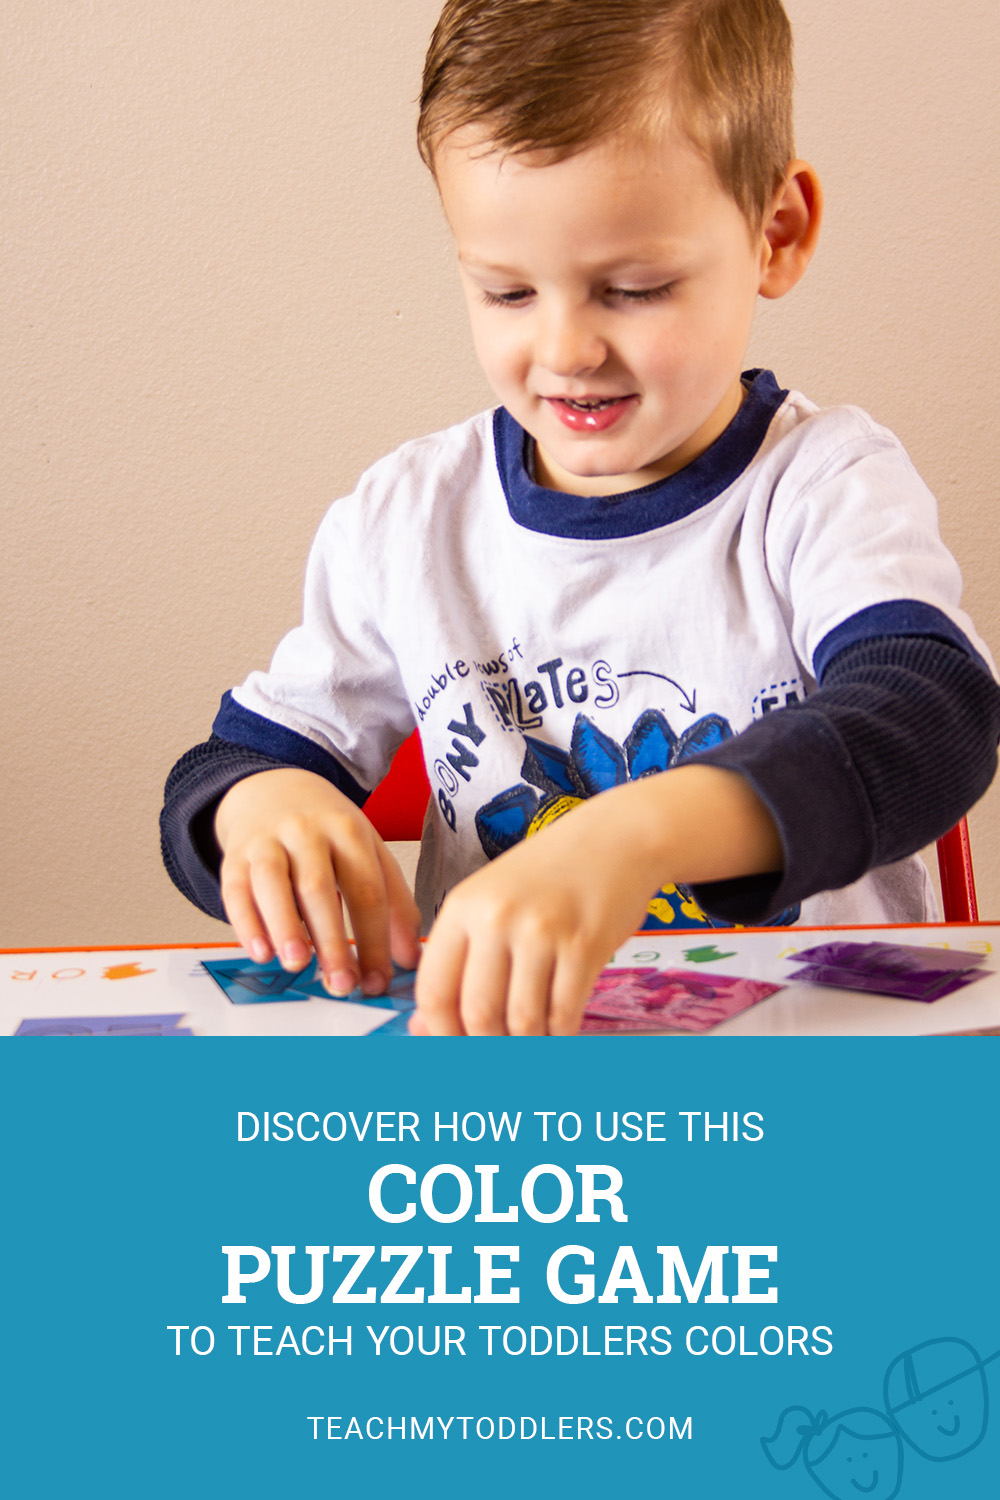 Teach your toddlers colors by using this mutlicolor puzzle game to help your kids match colors